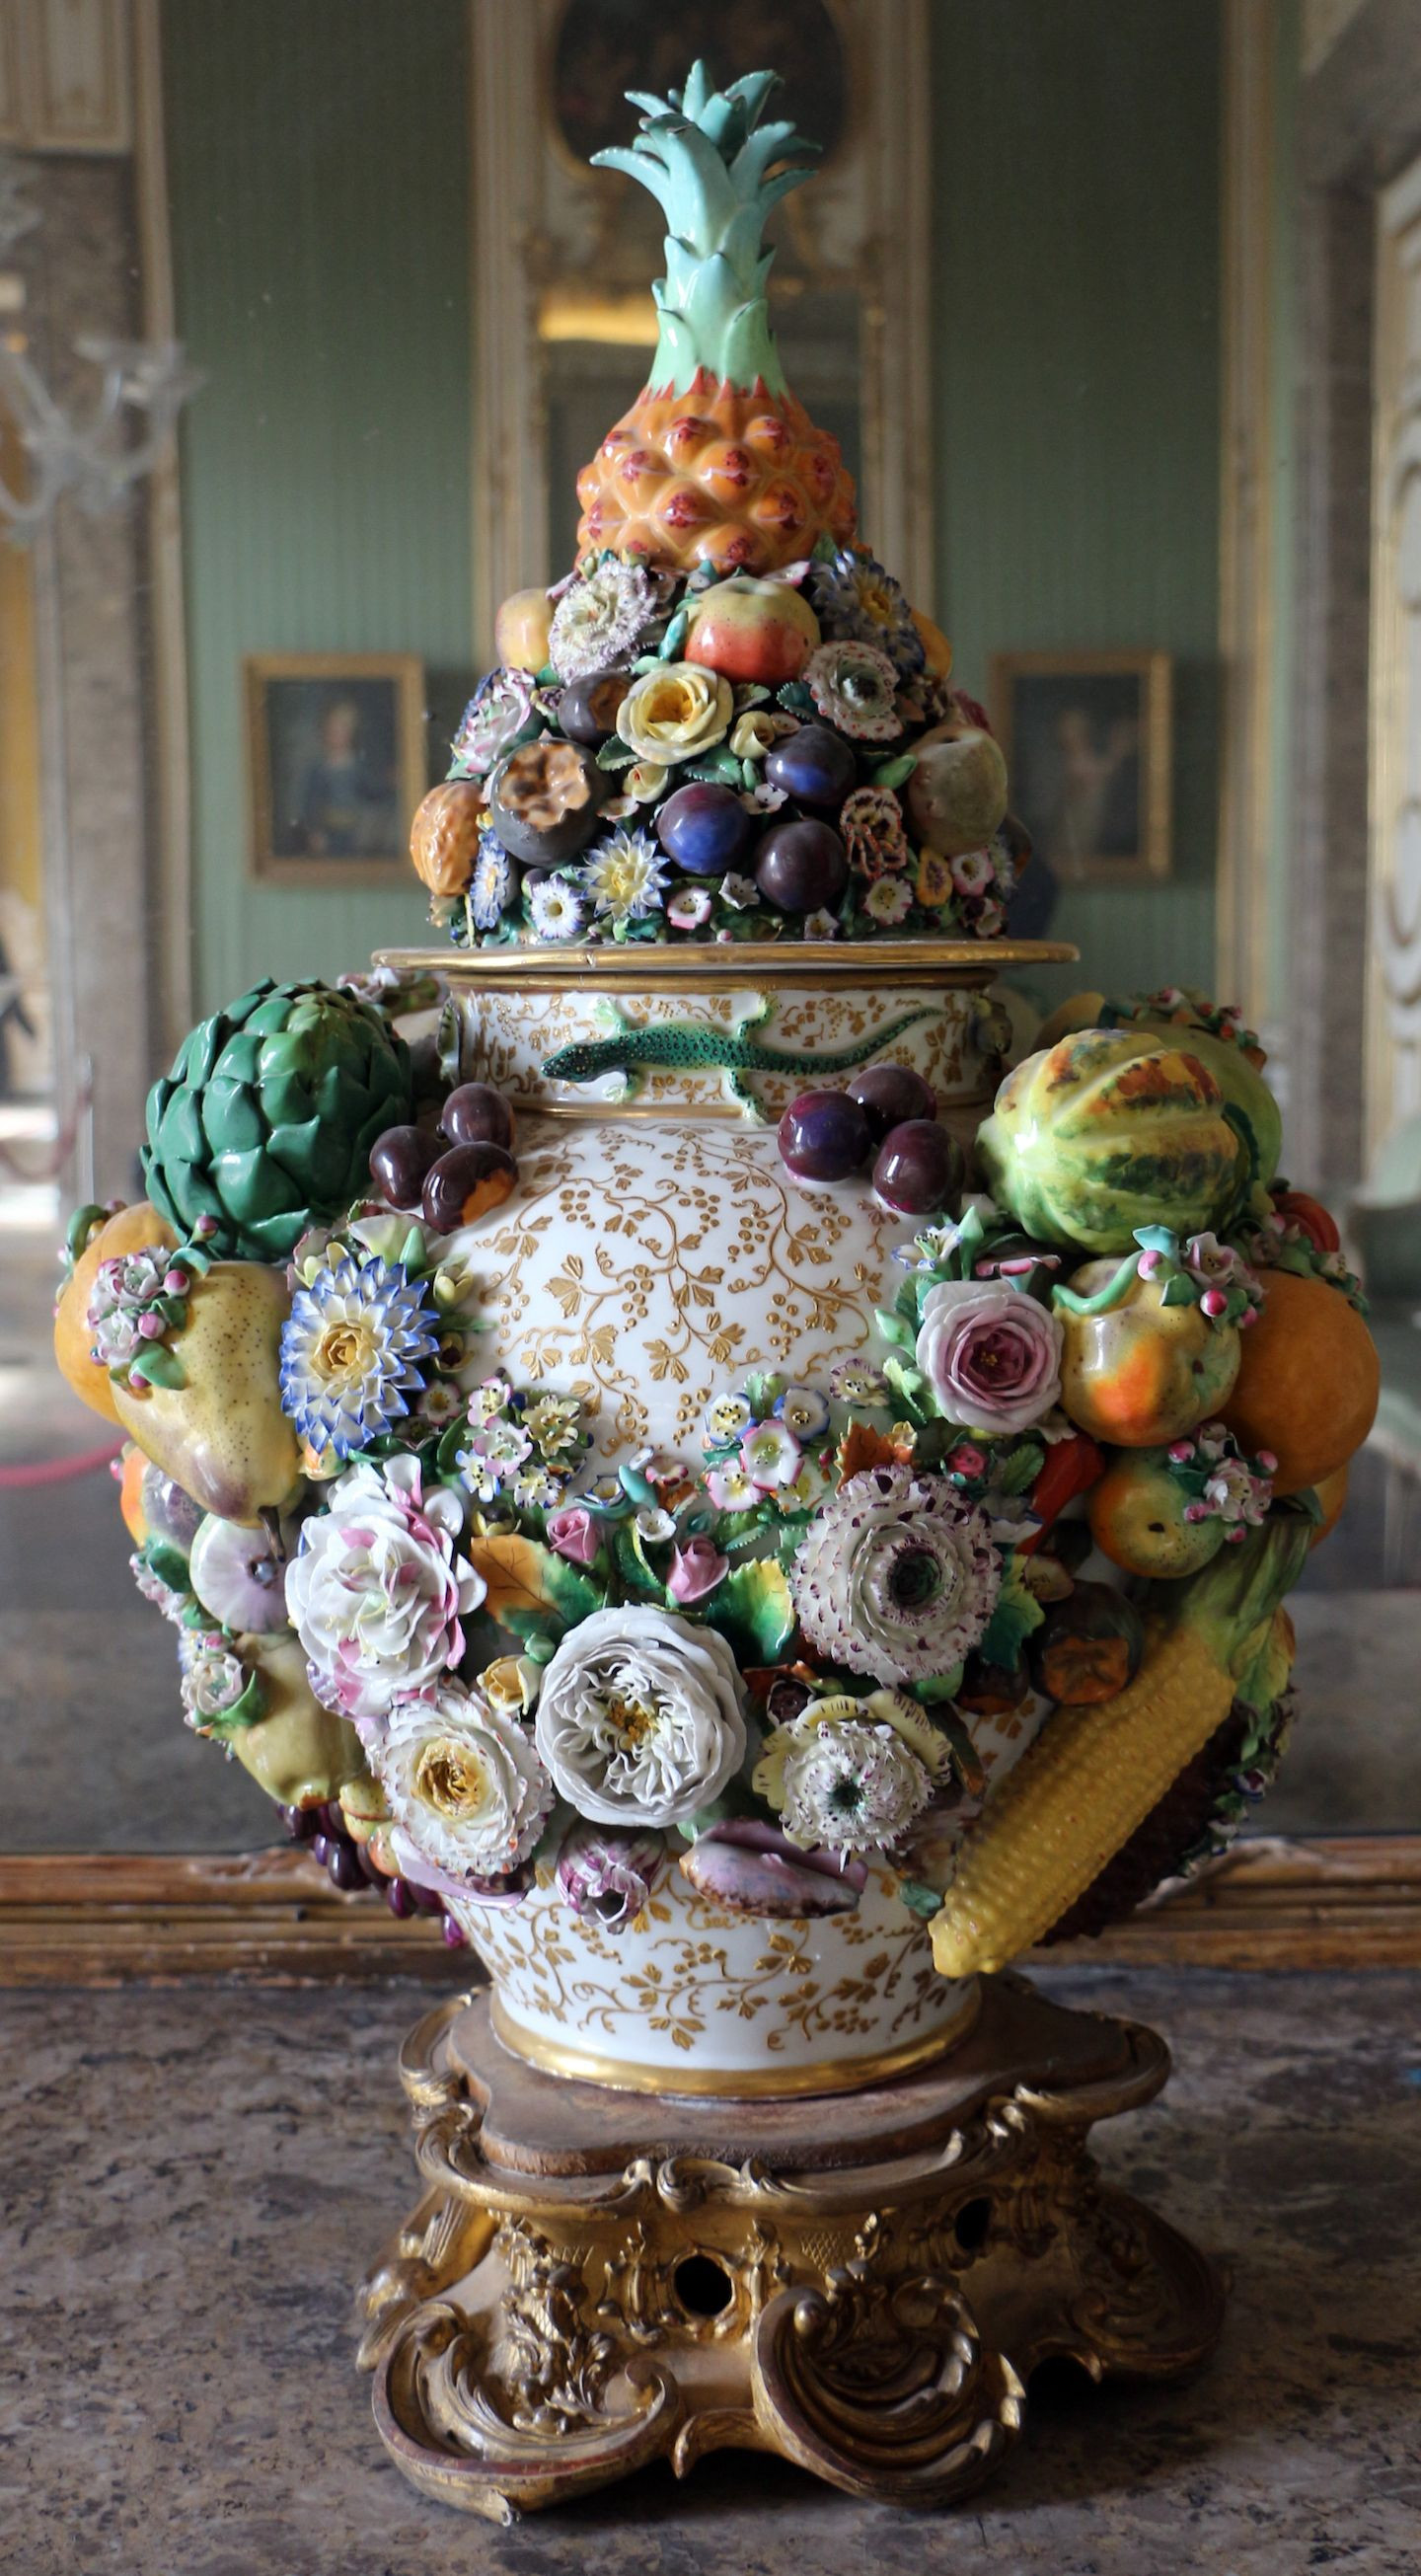 Vintage Capodimonte Vase Of Royal Palace Of Caserta Italy Capodimonte Porcelain Vase with within Royal Palace Of Caserta Italy Capodimonte Porcelain Vase with Fruit Flowers and Animals In High Relief